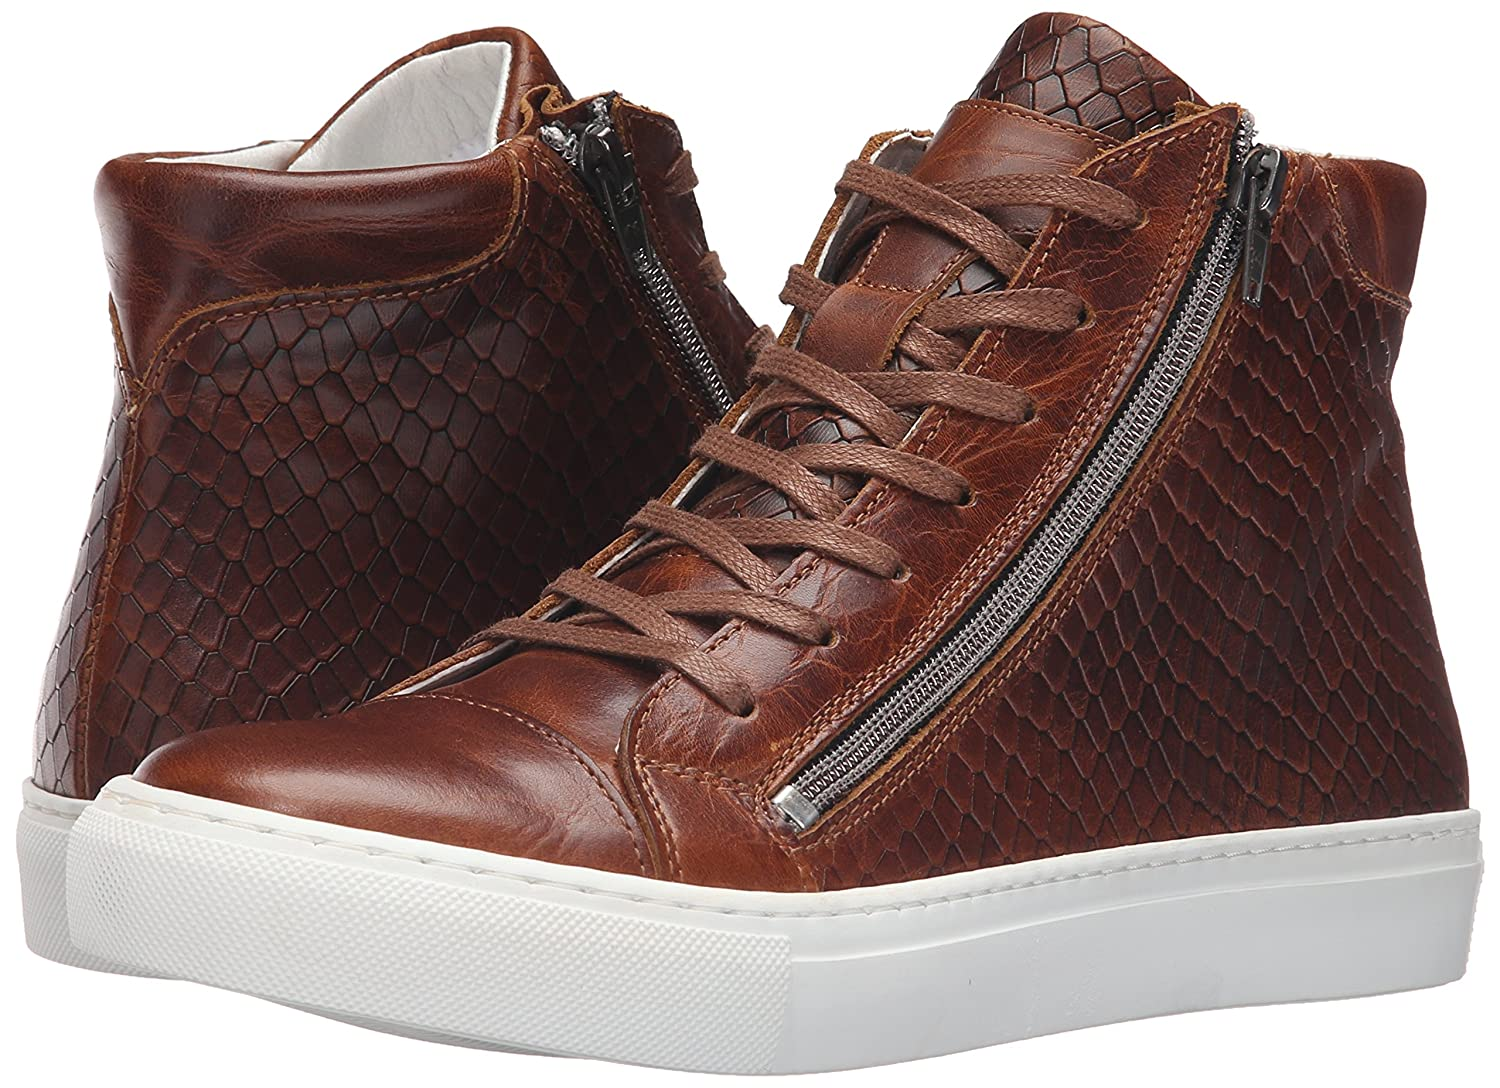 Kenneth Cole REACTION Mens Good Vibe Fashion Sneaker